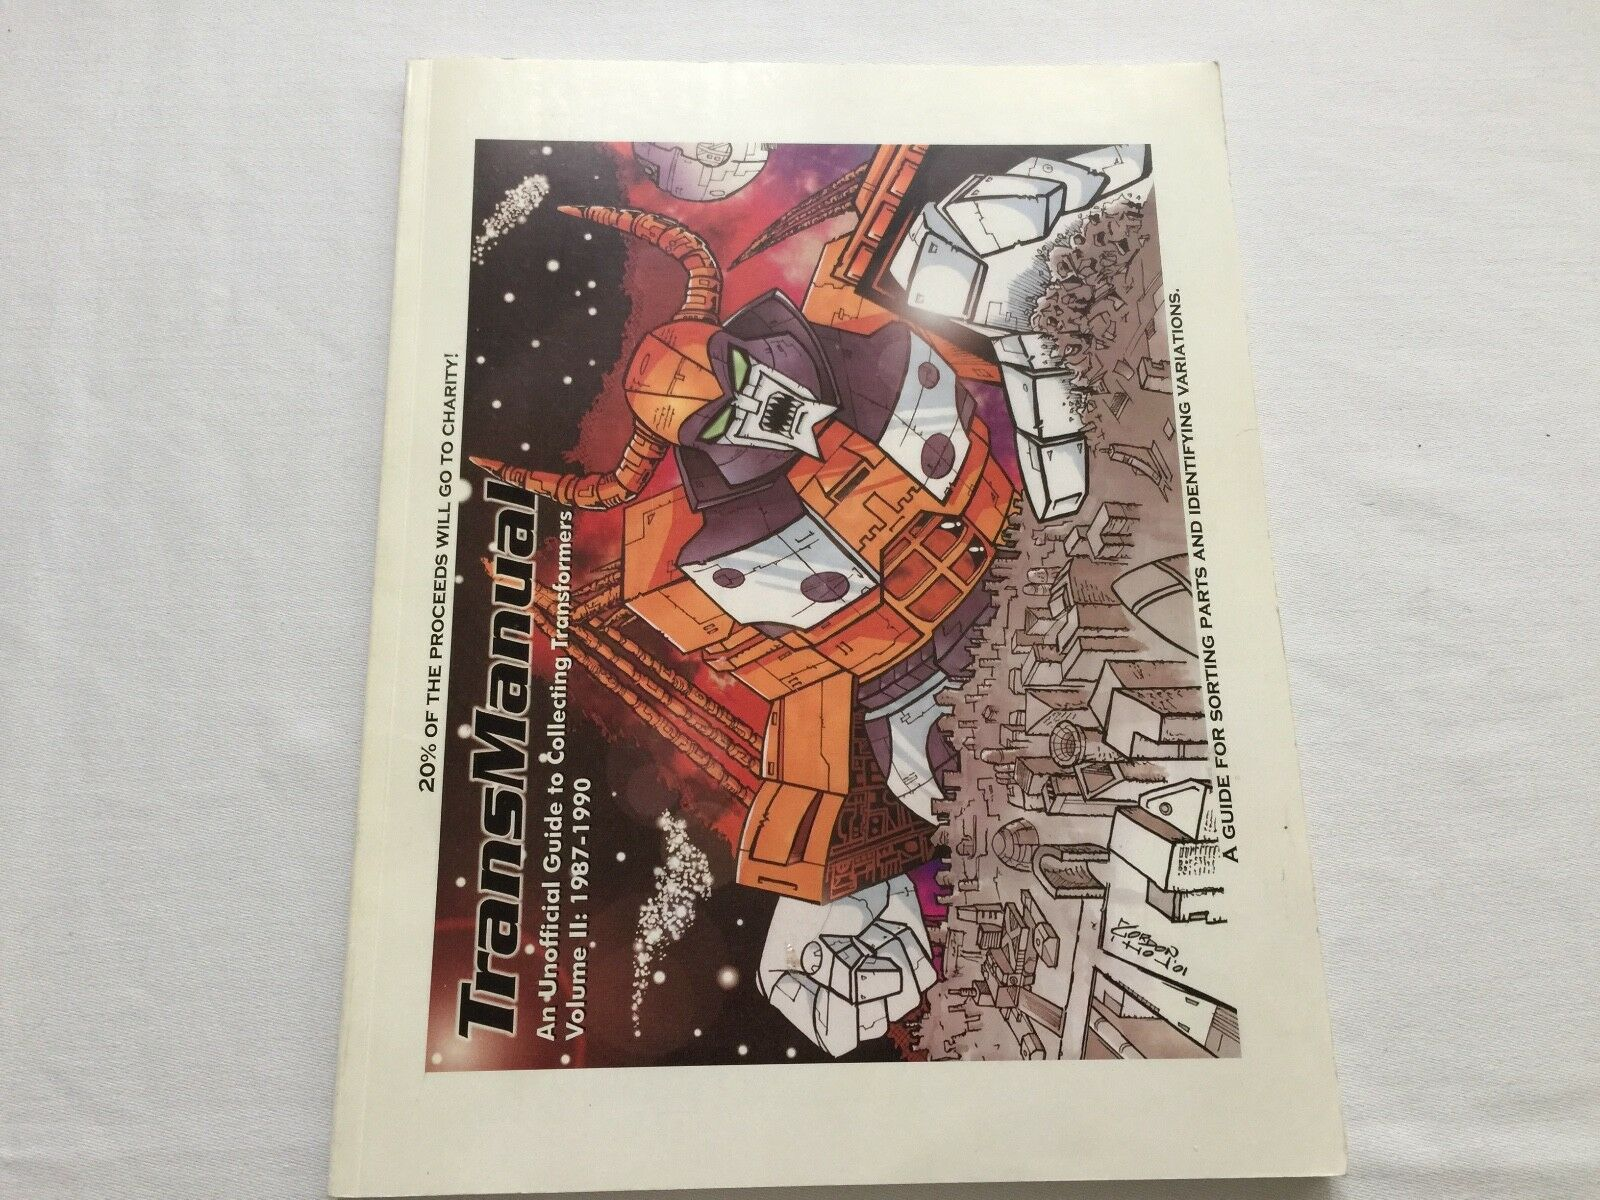 Transformers G1 TRANSMANUAL part 2 complete collection guide book toyline